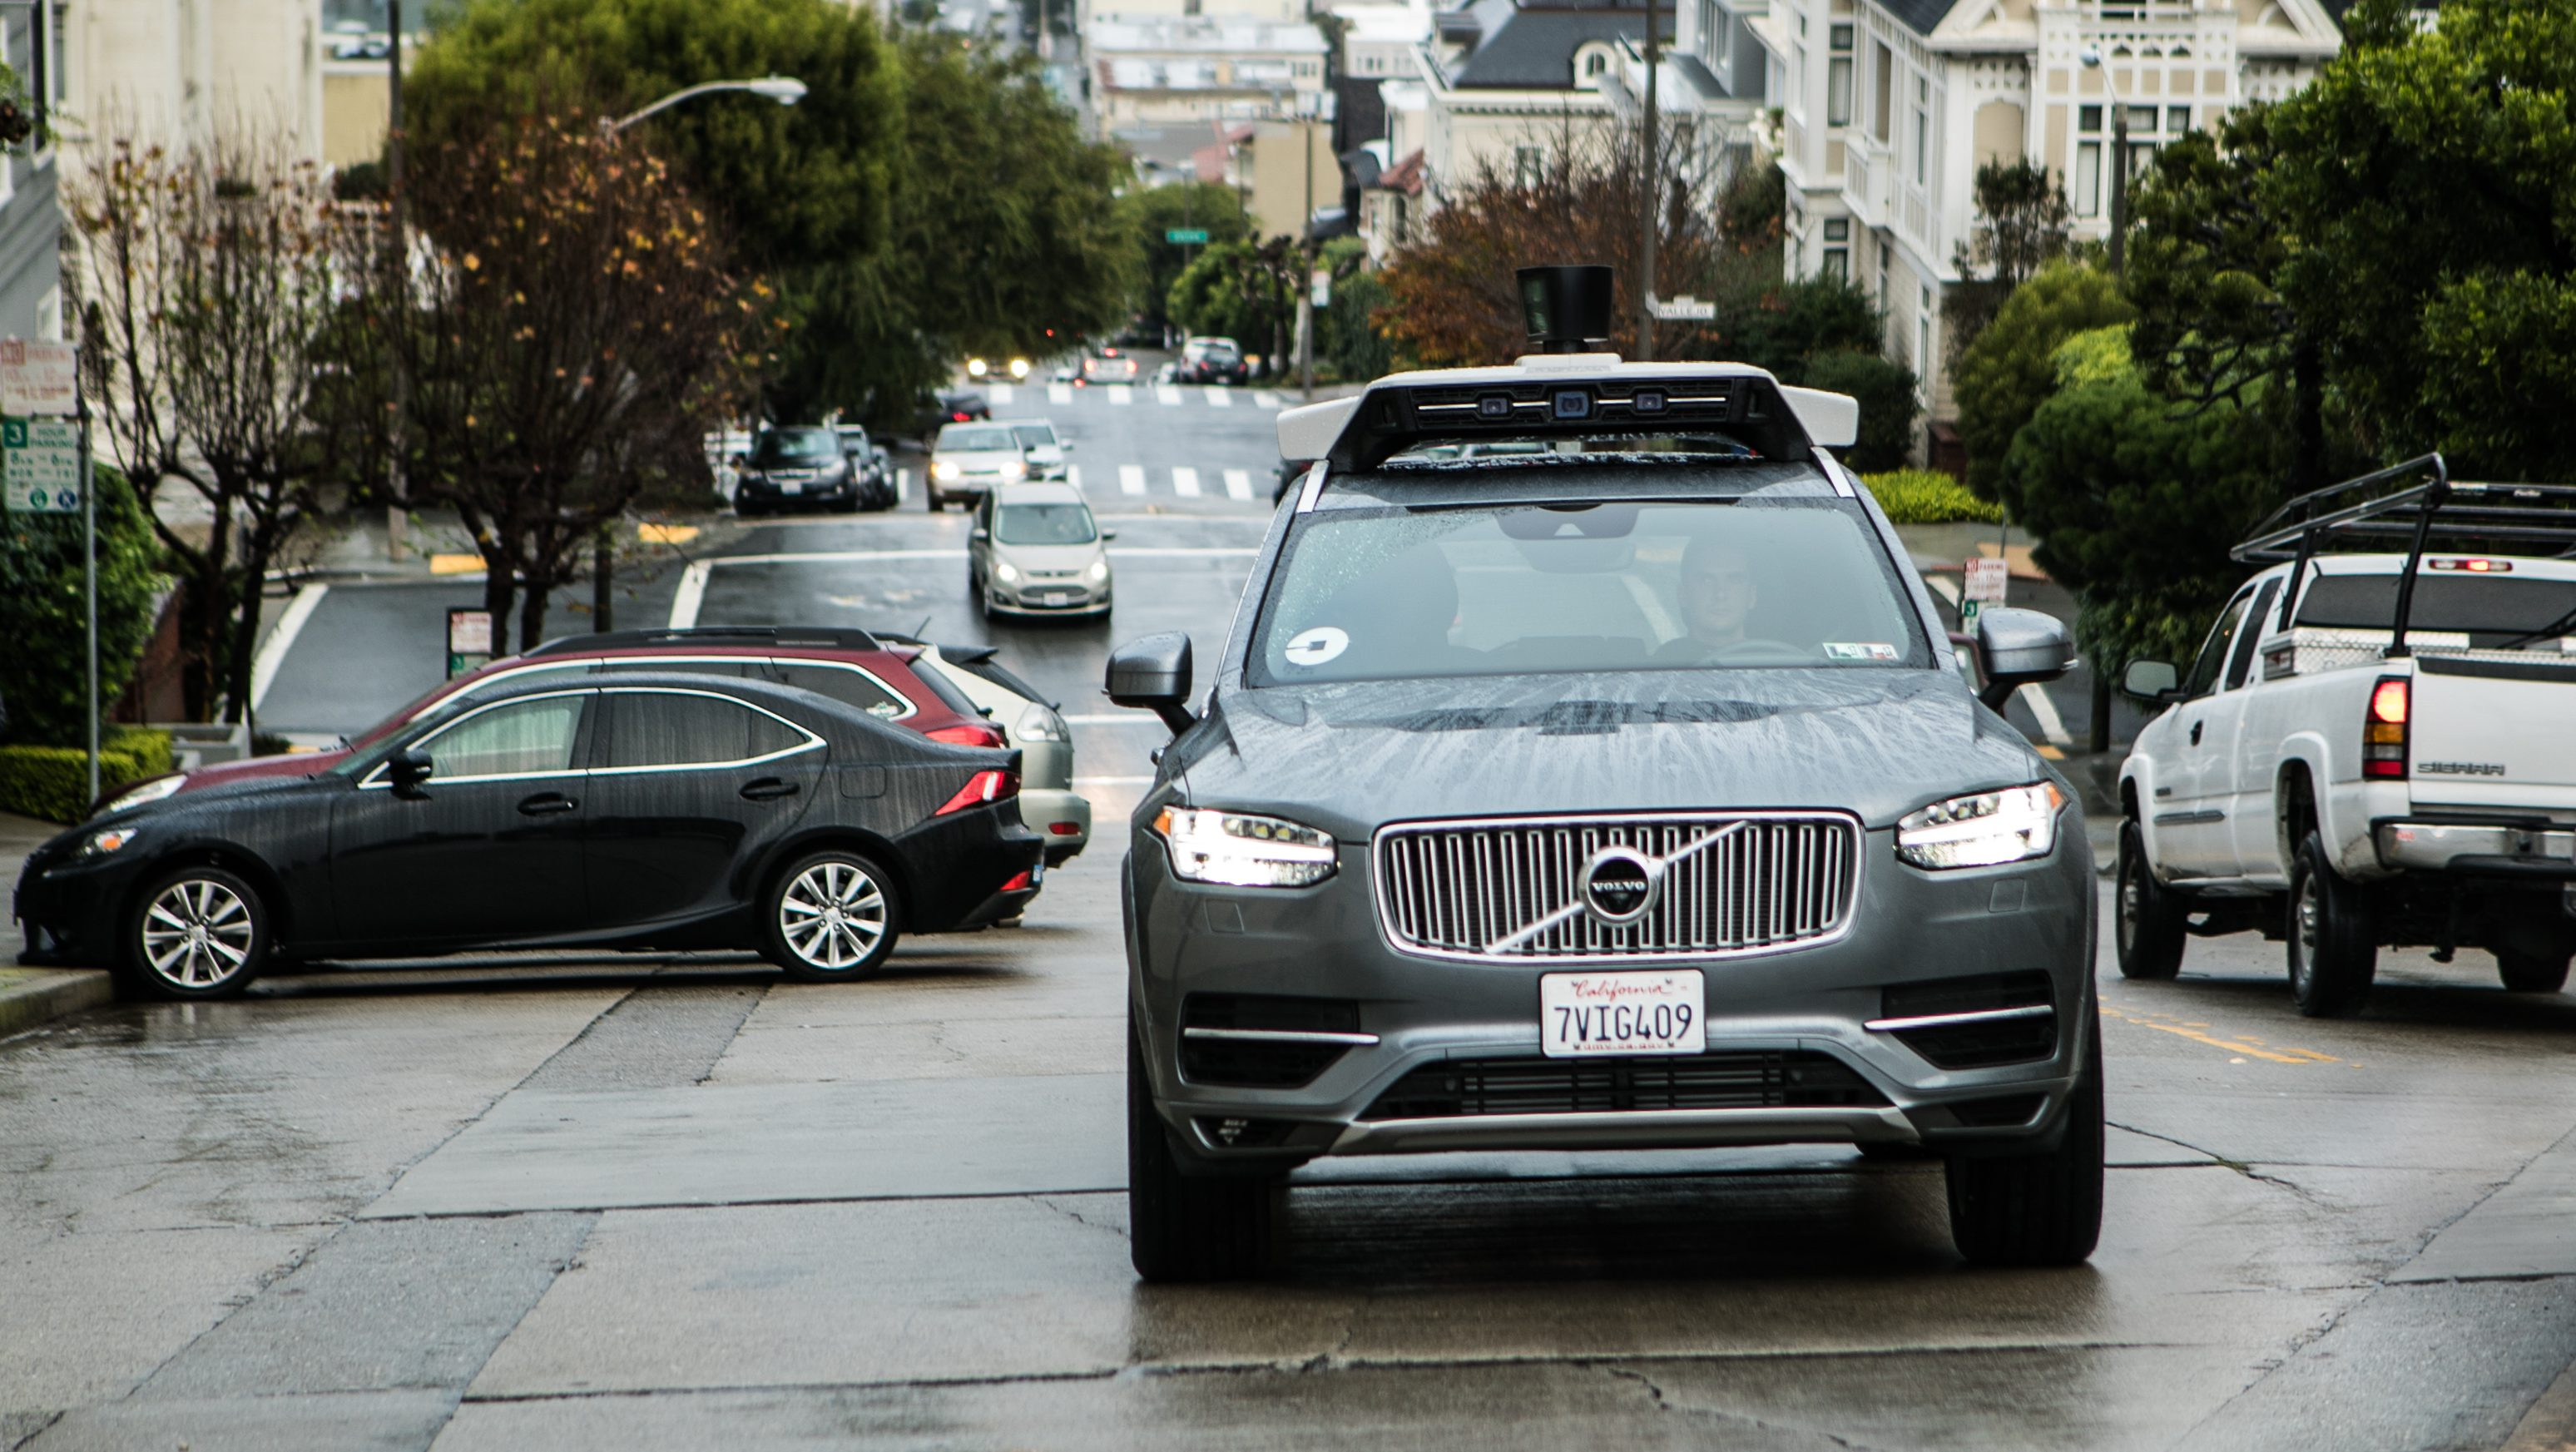 A self-driving Uber Volvo SUV on the streets of San Francisco.